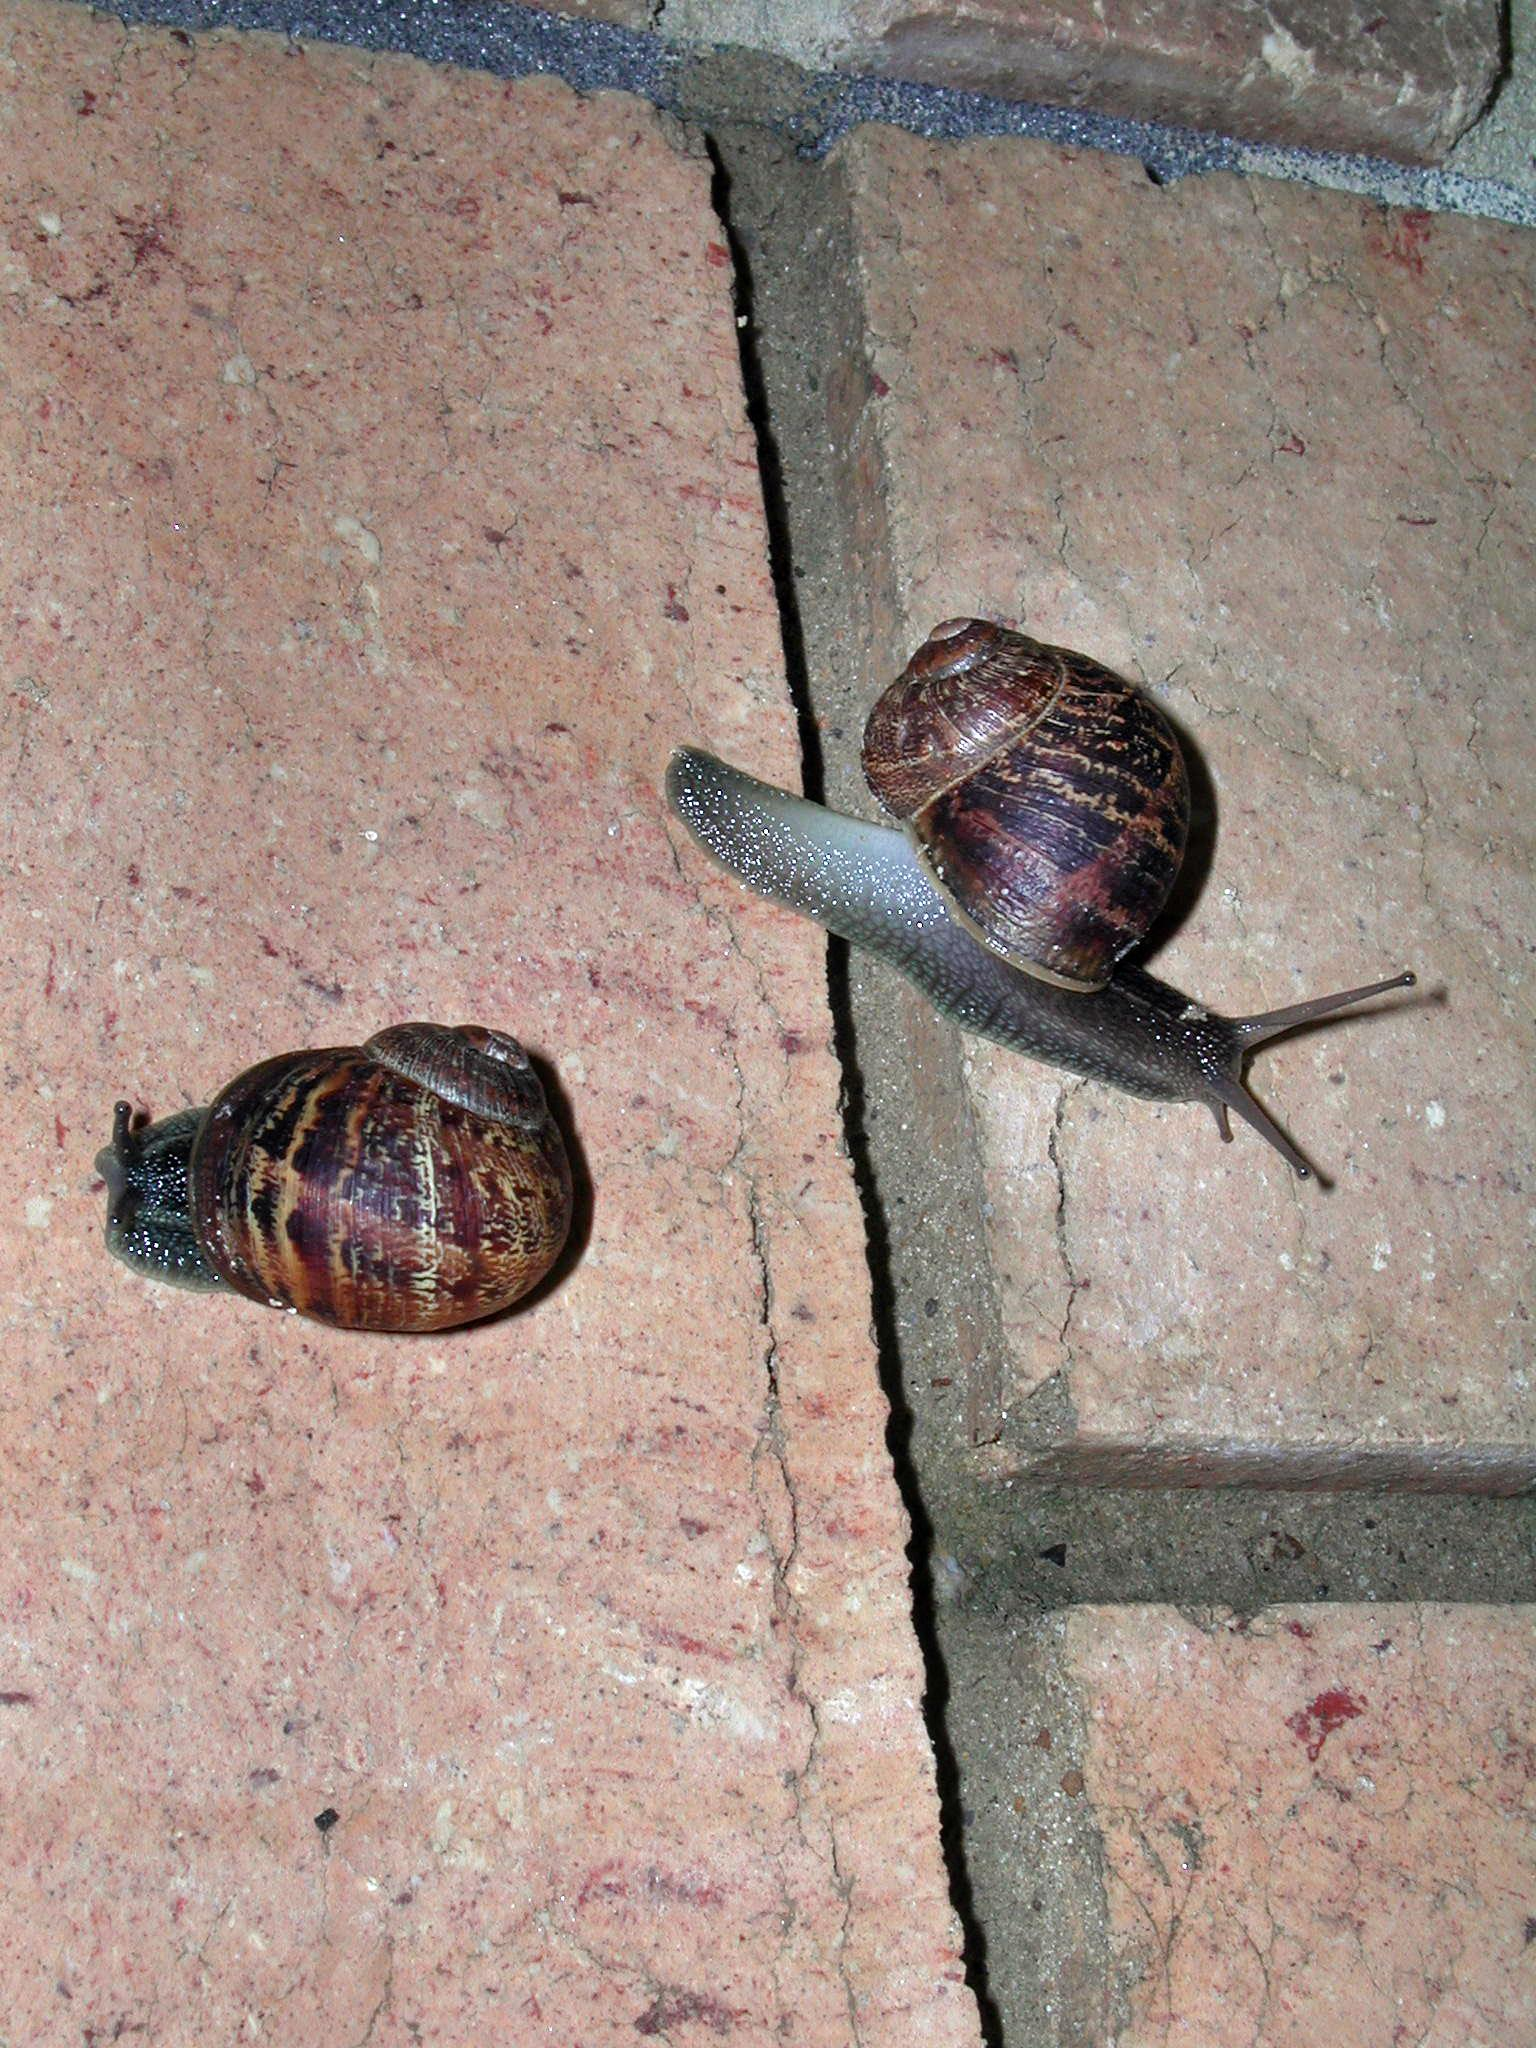 This should be snail-1.jpeg.  Is it missing?